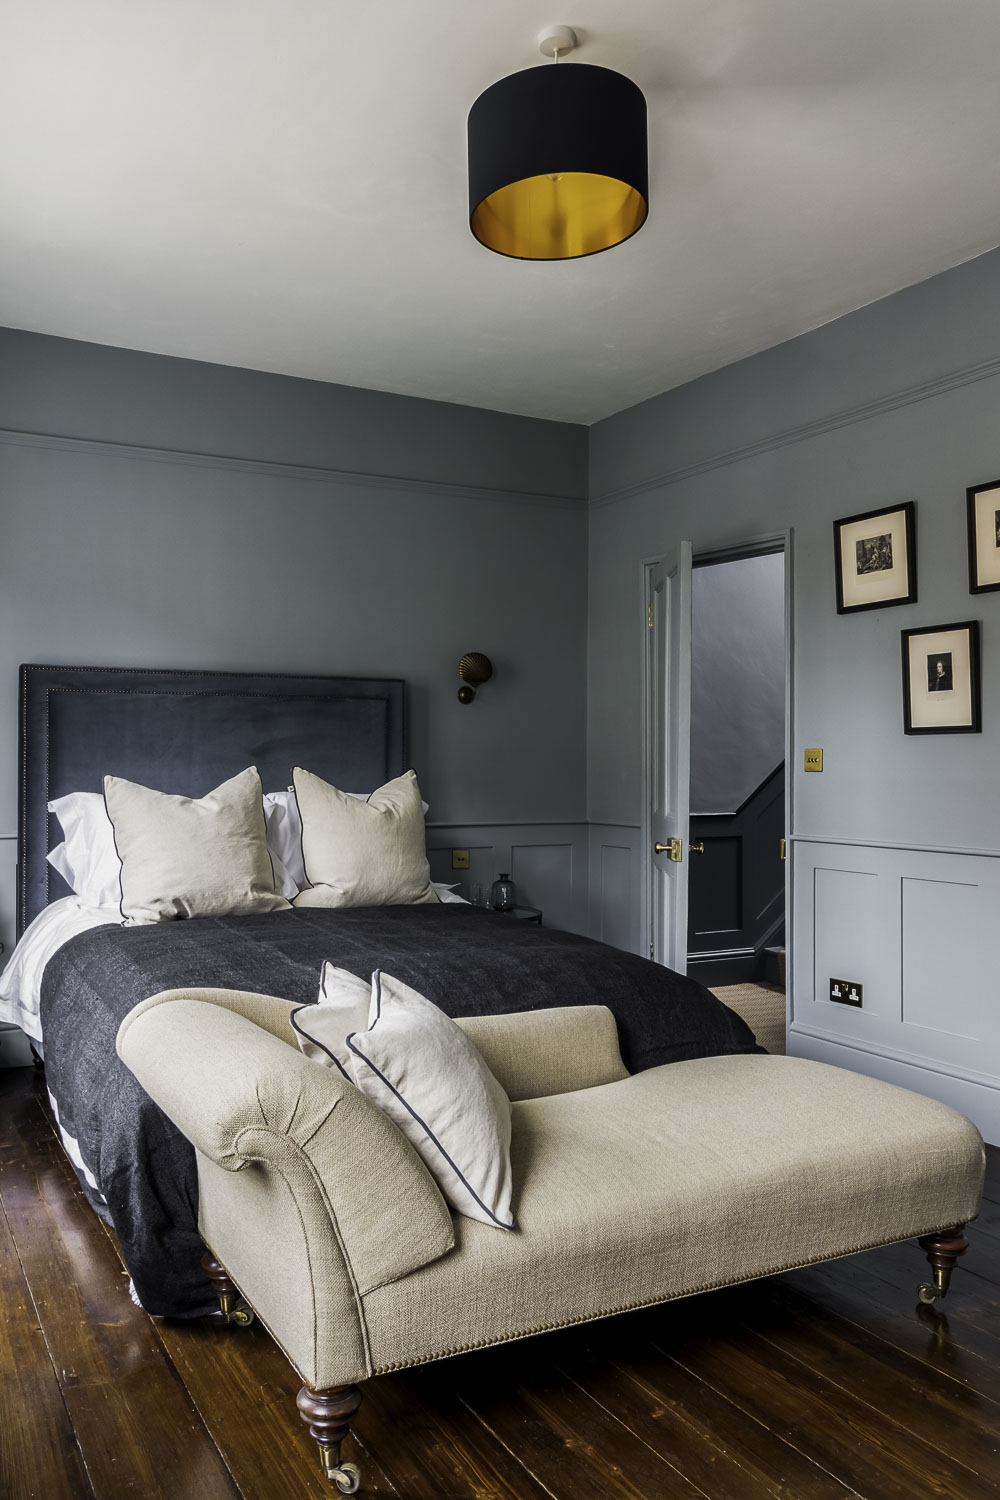 walton_street-master_bedroom_1-1500pw-250kb.jpg